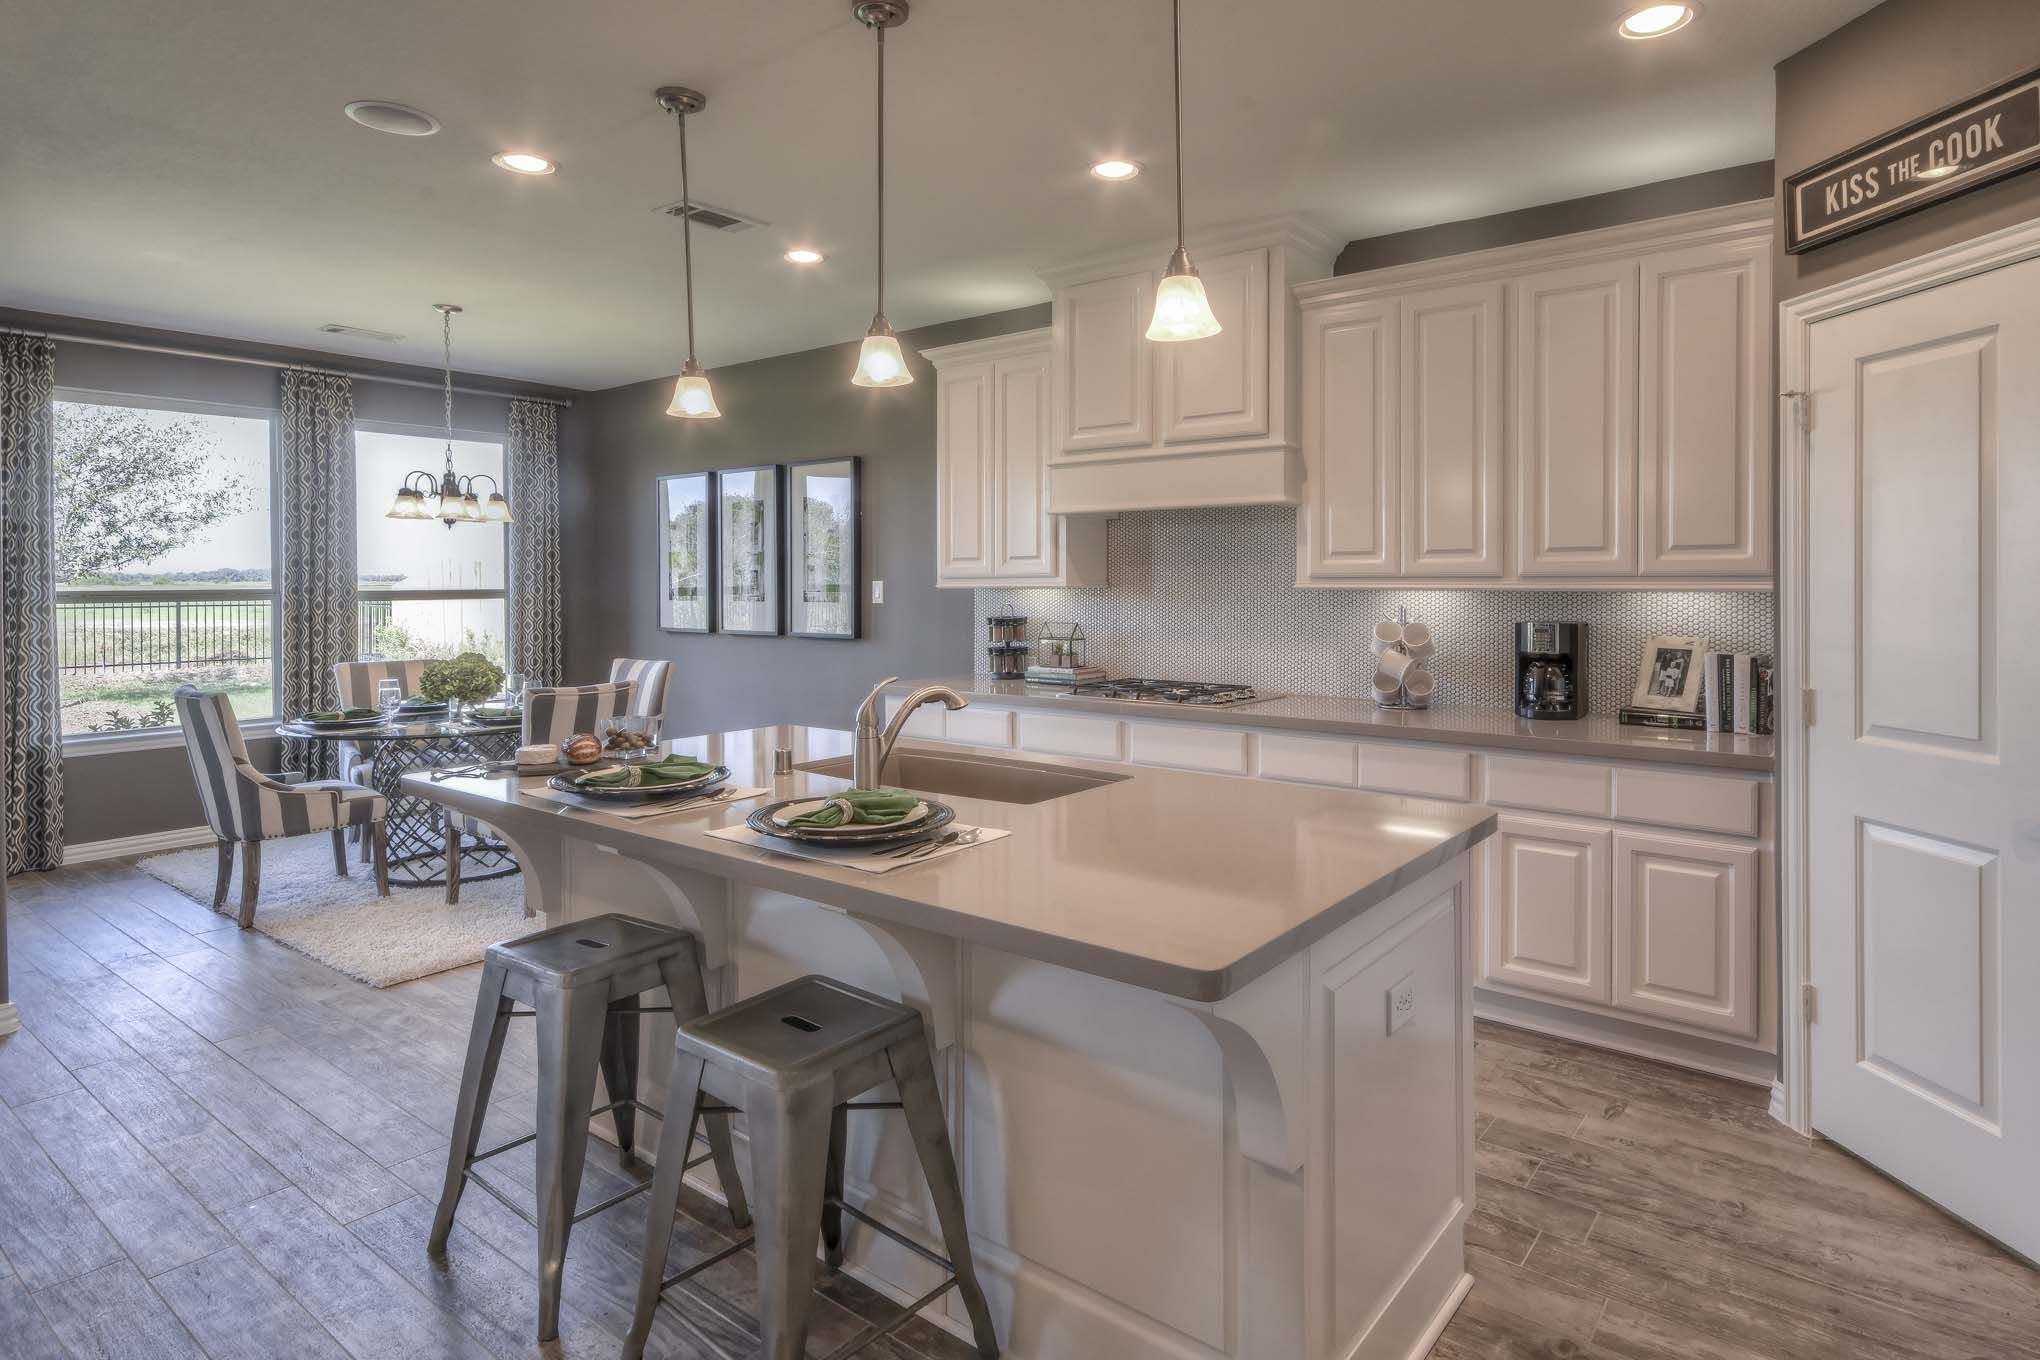 Best A Light And Bright Kitchen With A Penny Tile Backsplash 400 x 300